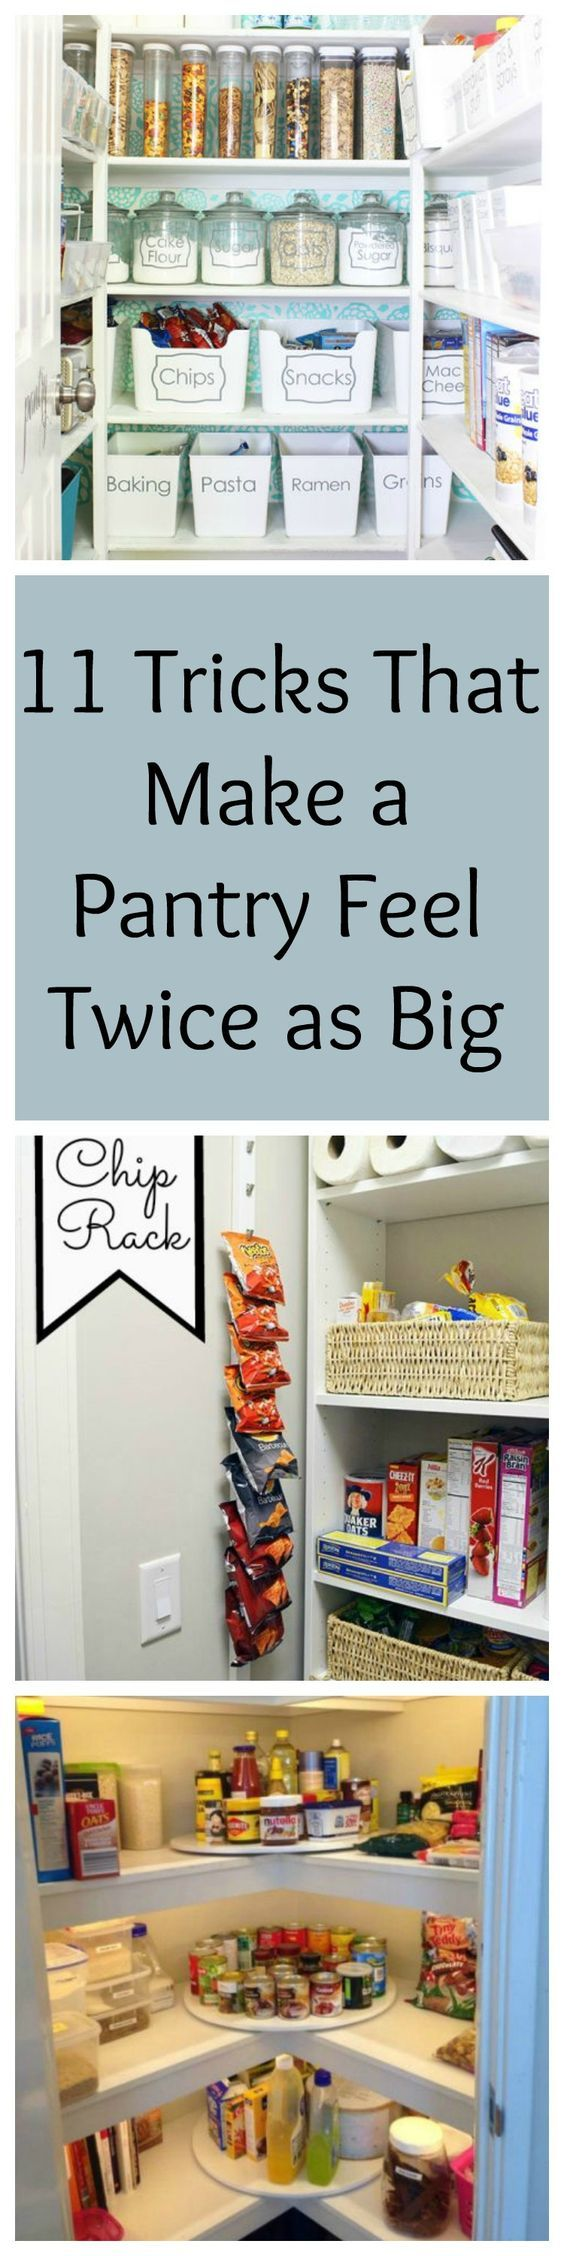 Never lose your favorite spice blend behind your boxes of cereal again thanks to these pantry organization tips and tricks.